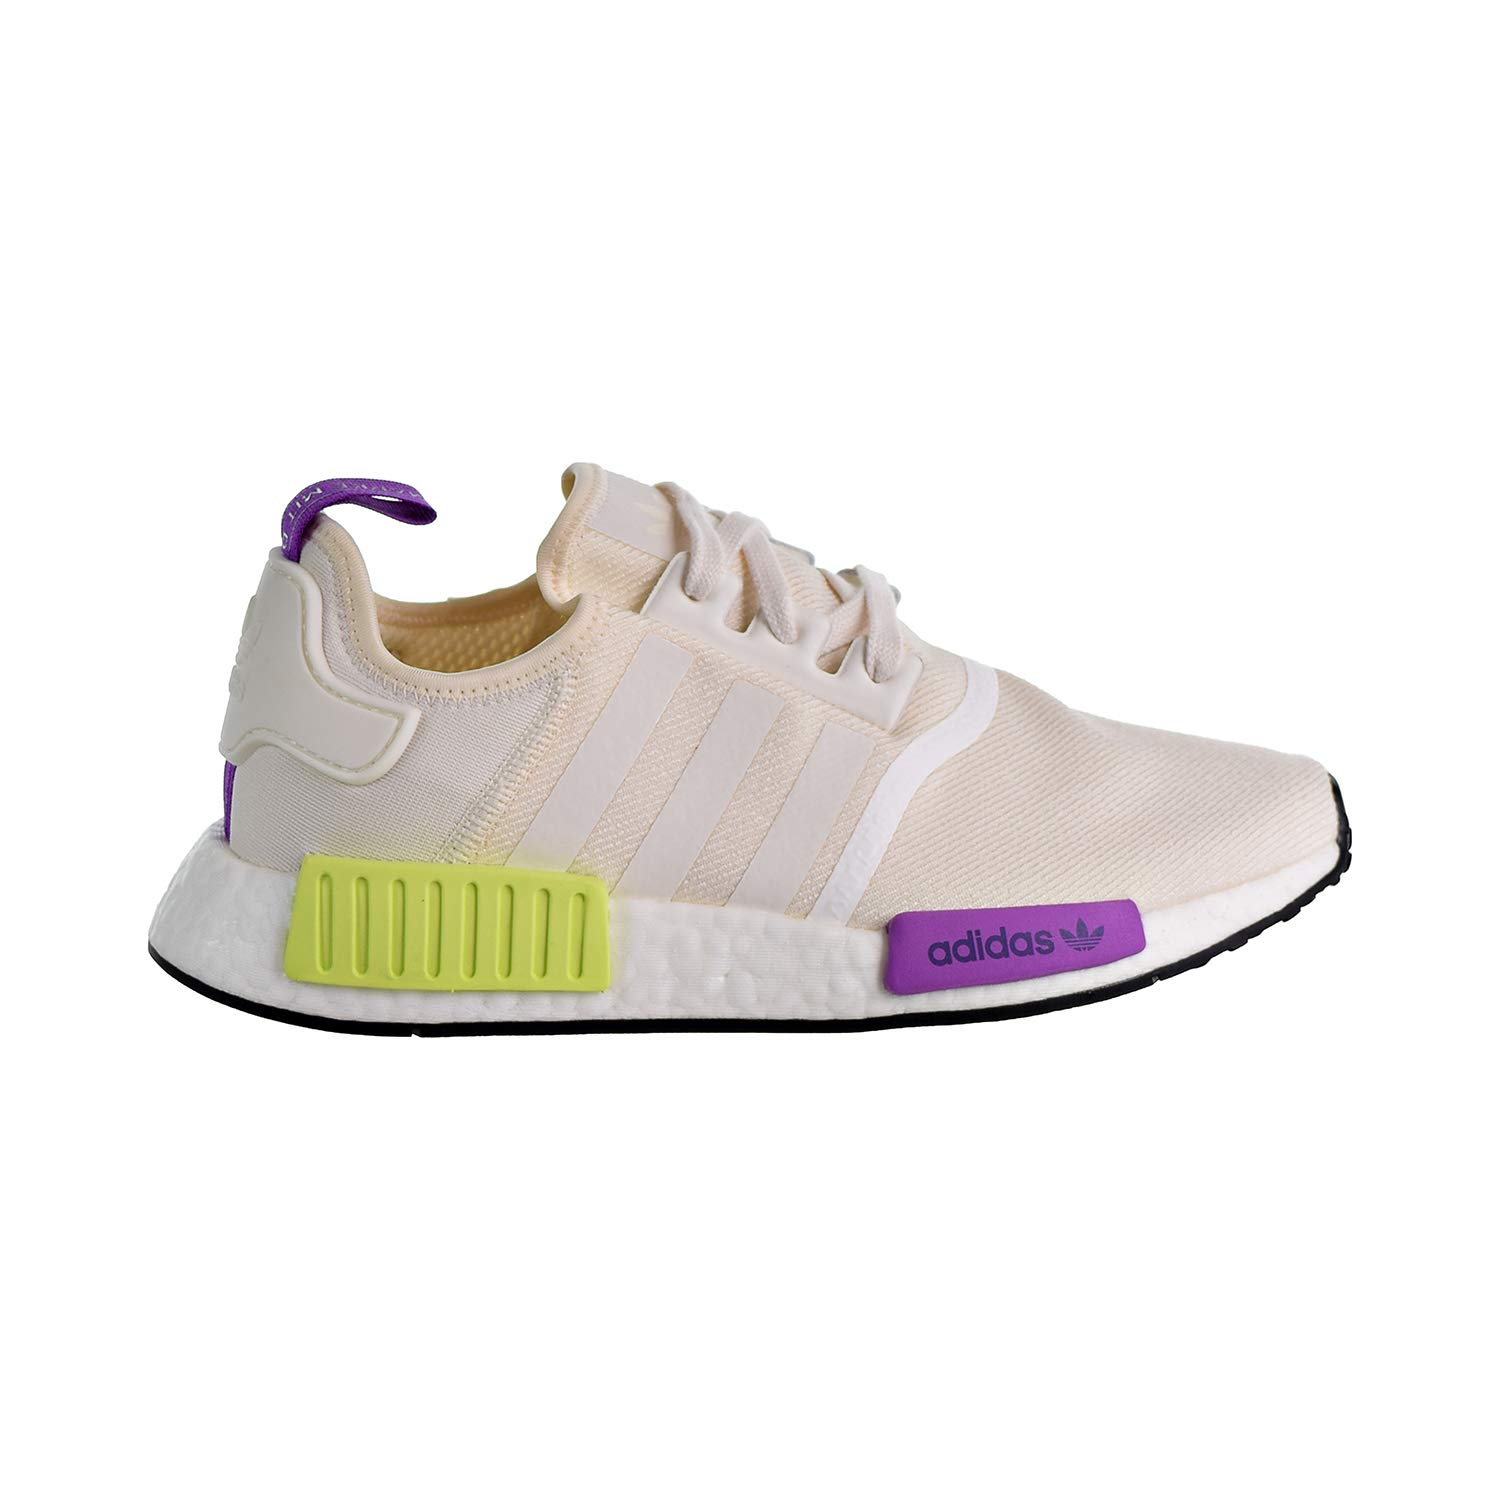 adidas Originals Men's NMD_R1 Chalk WhiteChalk WhiteSemi Solar Yellow 11 D US